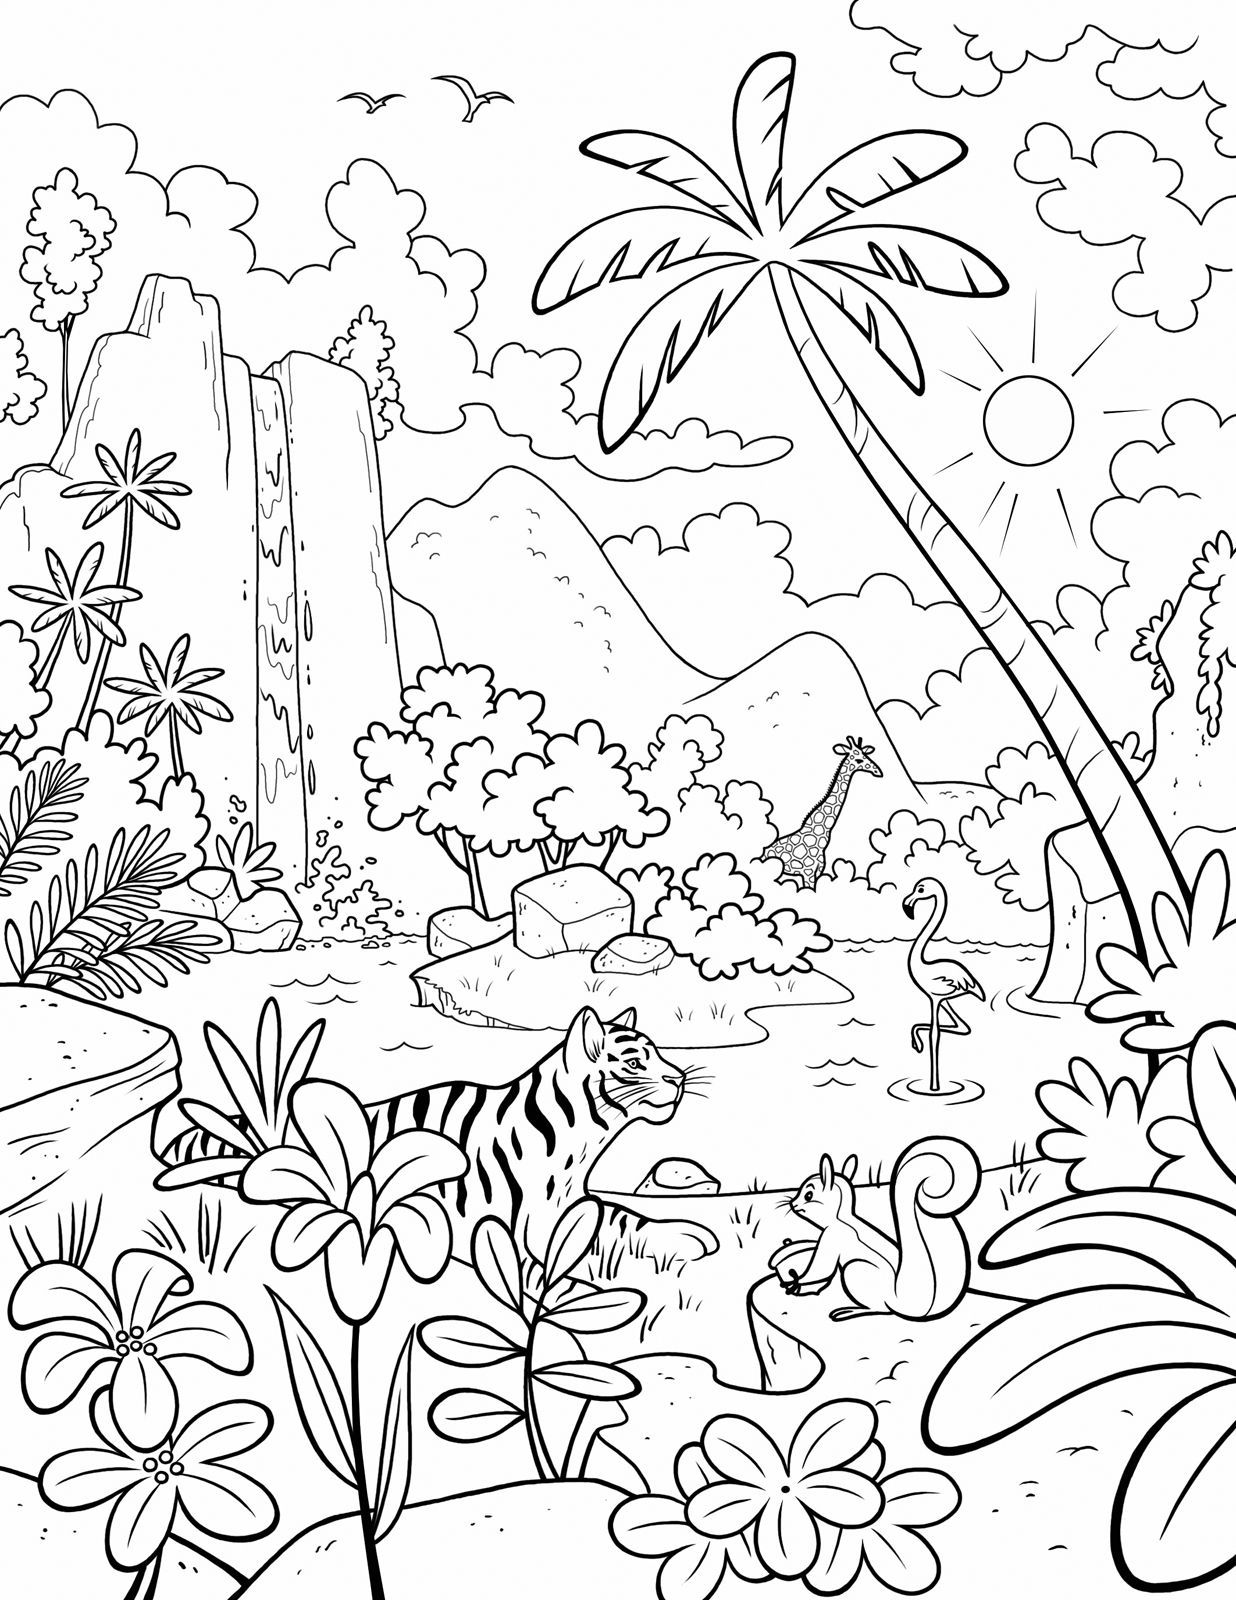 garden of eden coloring pages Download-A LDS Primary coloring page from lds ldsprimary 15-k